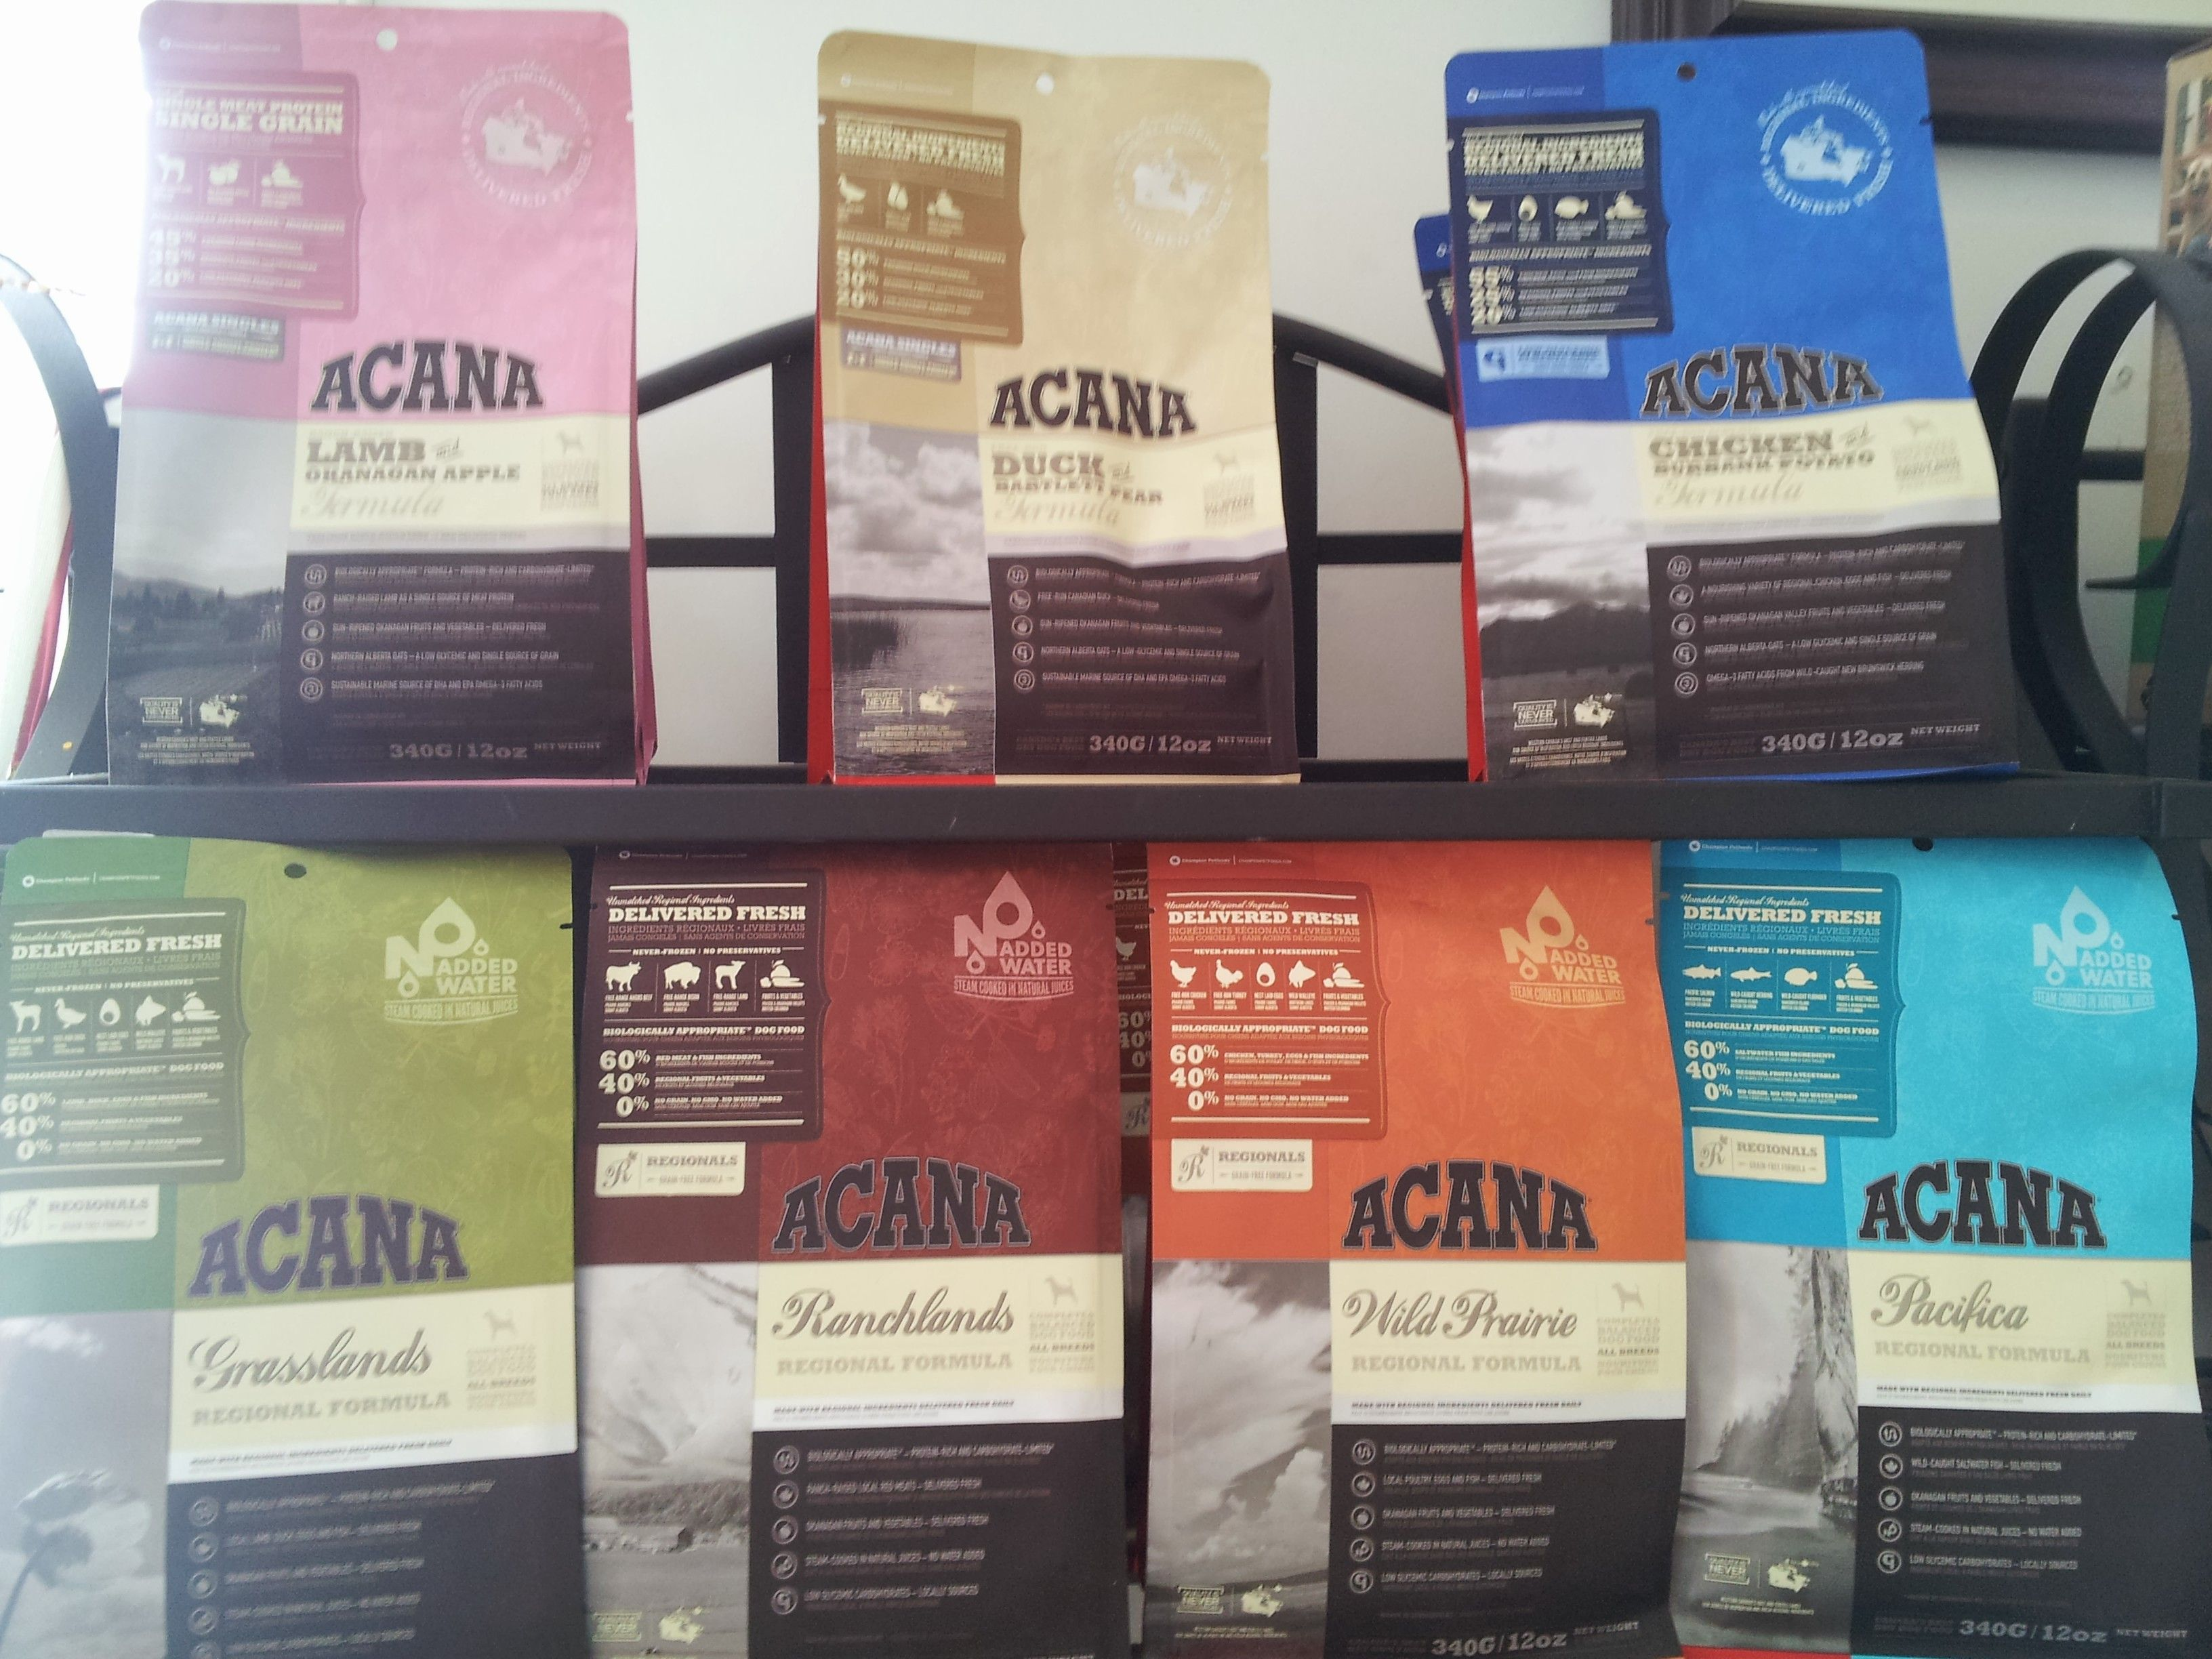 Acana Dog Food 7 Different Formulas Lam Okanagan Apple Duck